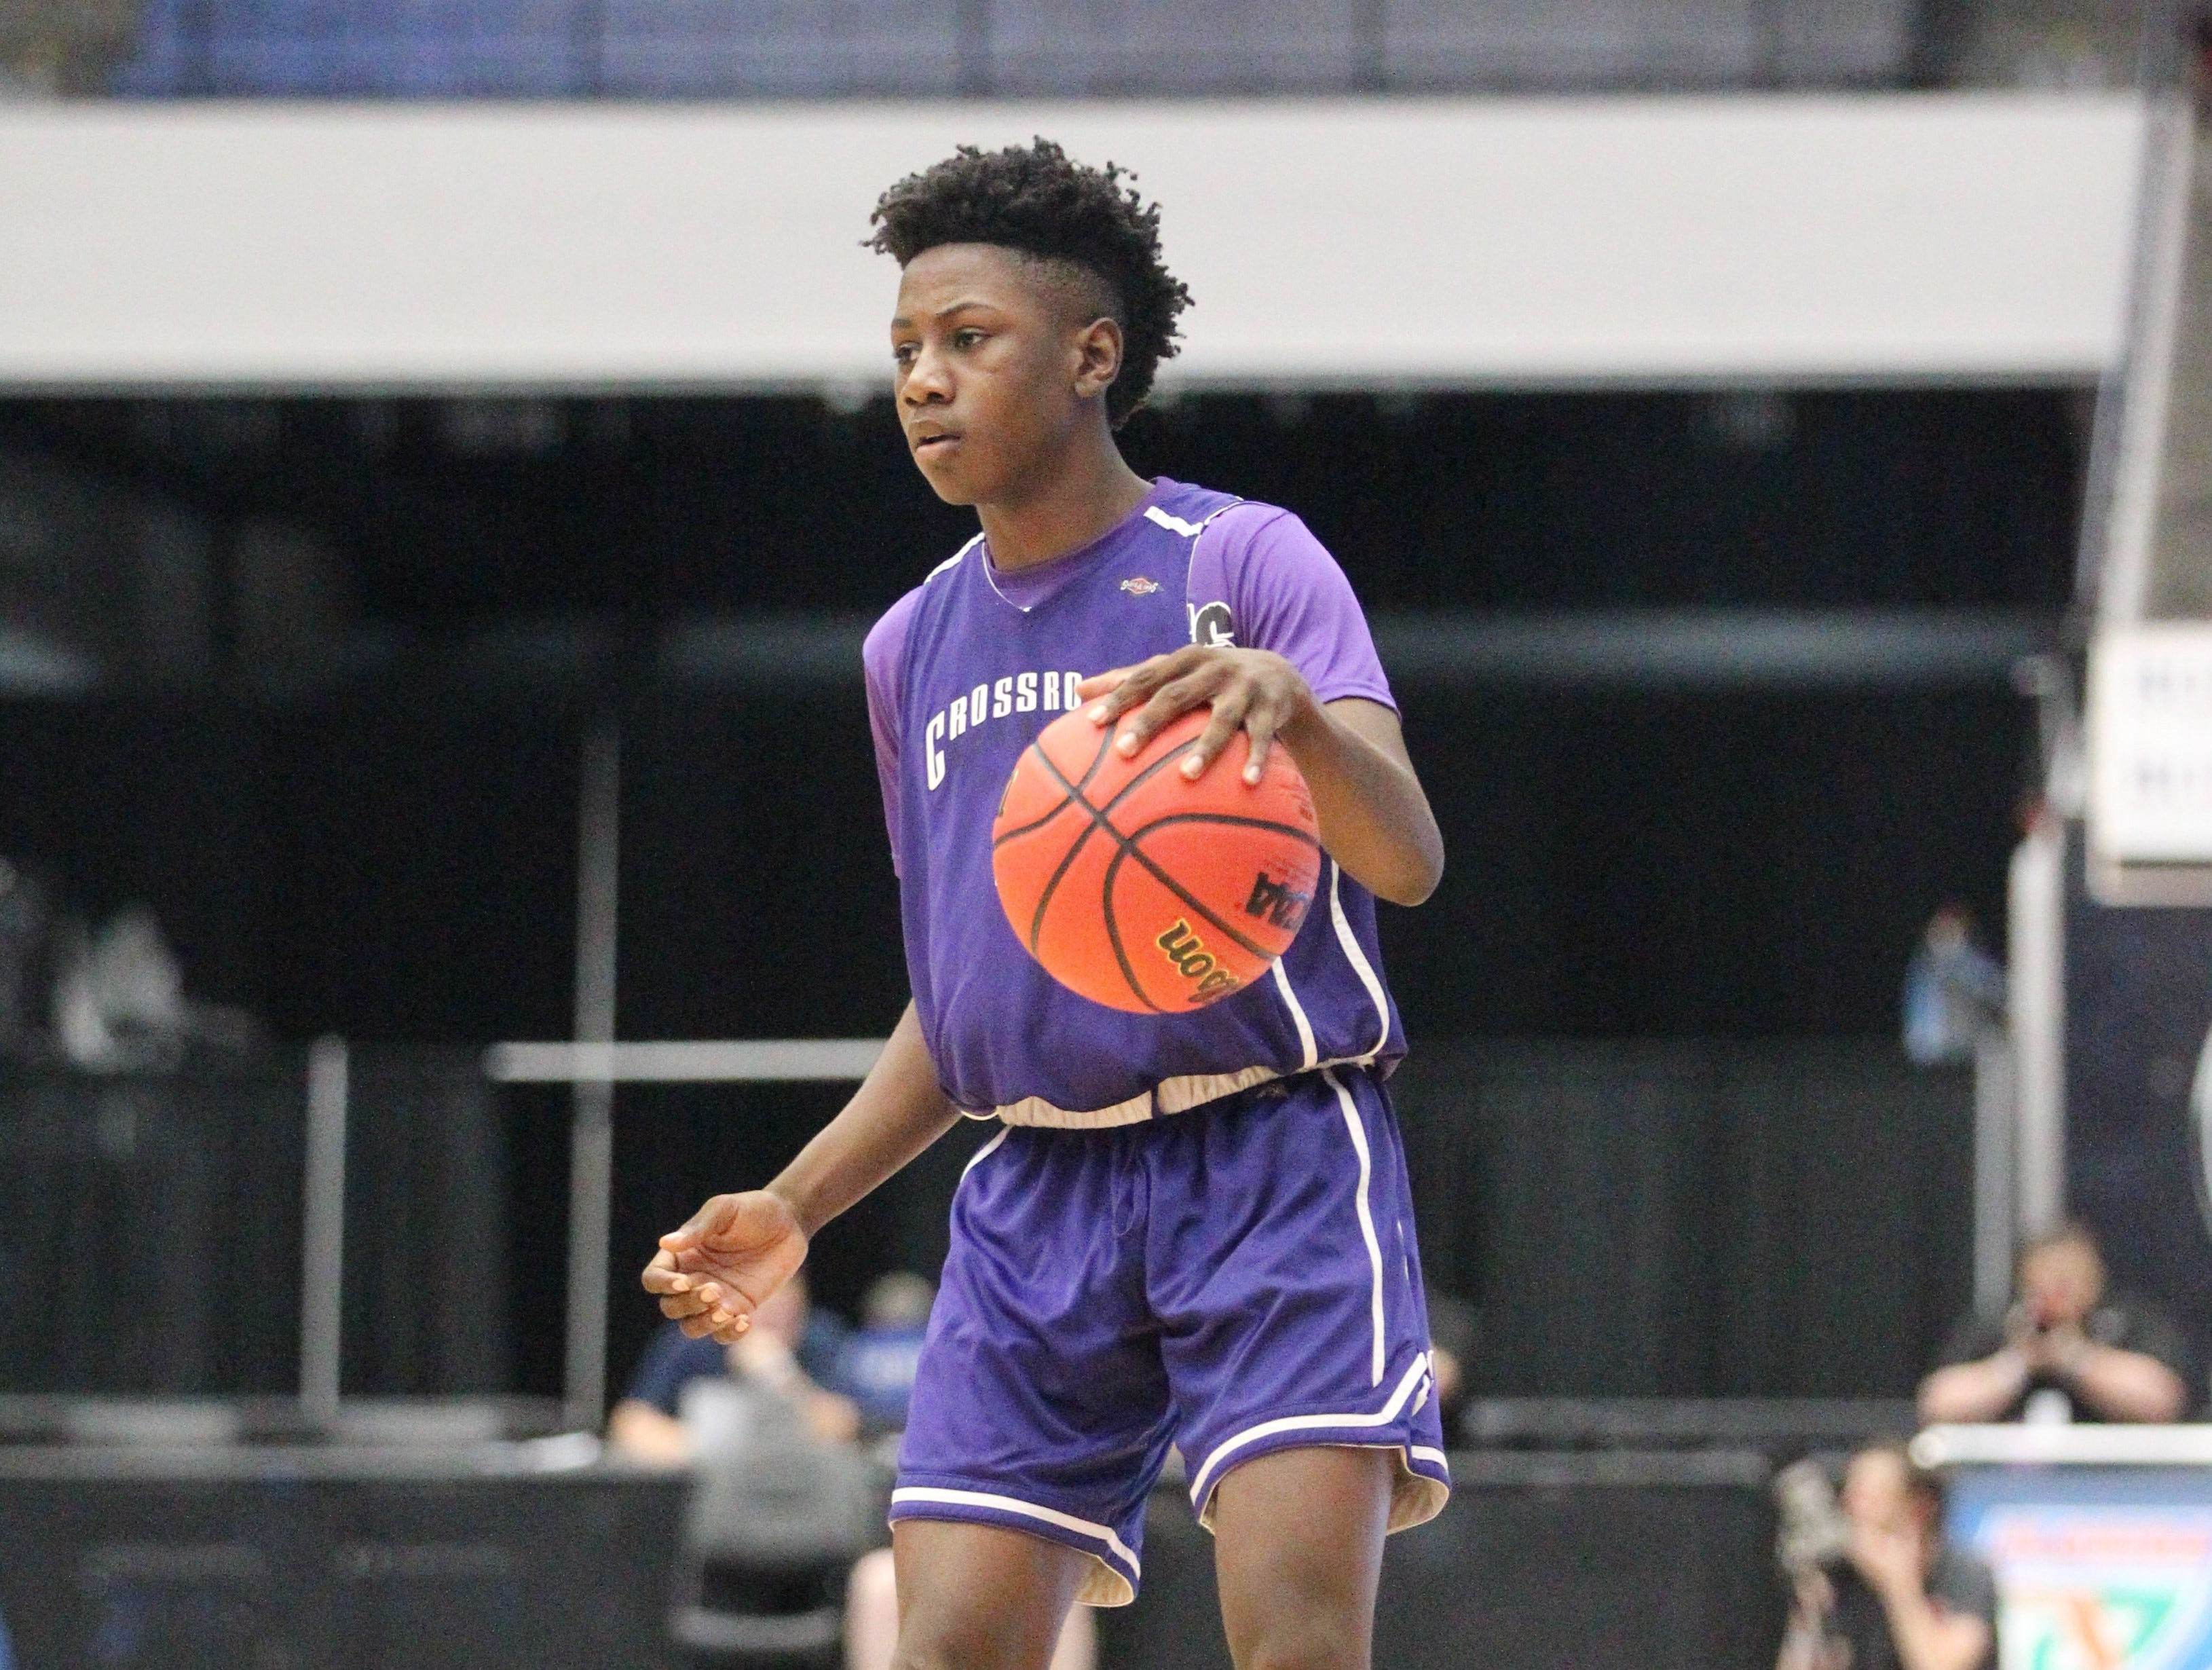 Crossroad Academy played Central Florida Christian Academy during a Class 2A state semifinal at the RP Funding Center in Lakeland on March 4, 2019.